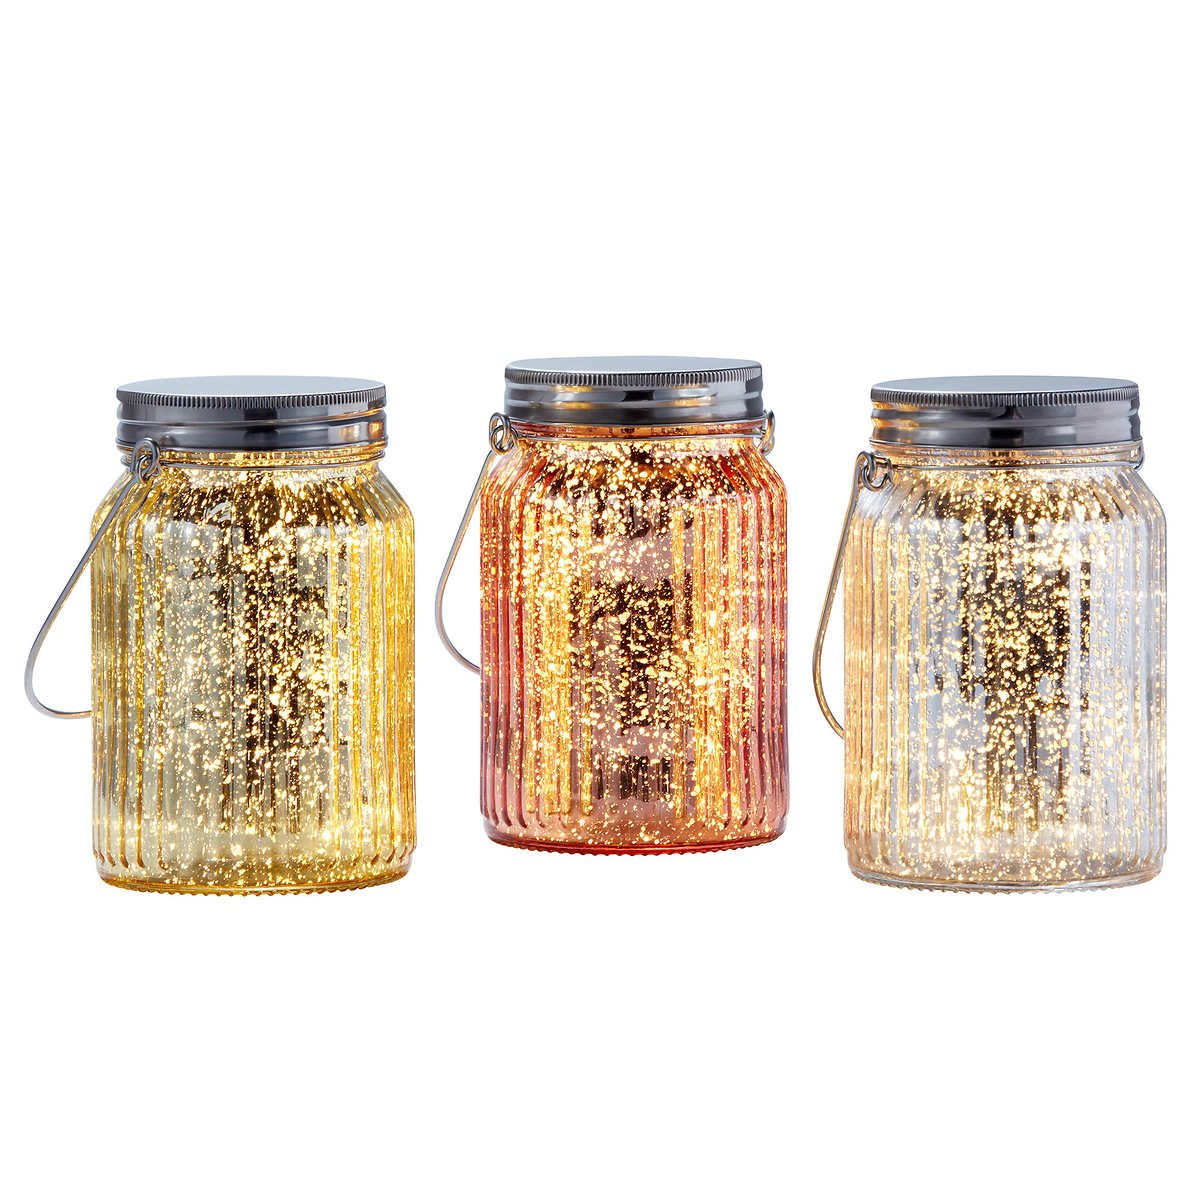 .Outside Inside Garden. Set of 3 Colored Glass Jars with Mini LED Lights in Silver Gold and Rose Gold with Timer Switch Perfect Centerpiece for Outdoor or Indoor Use